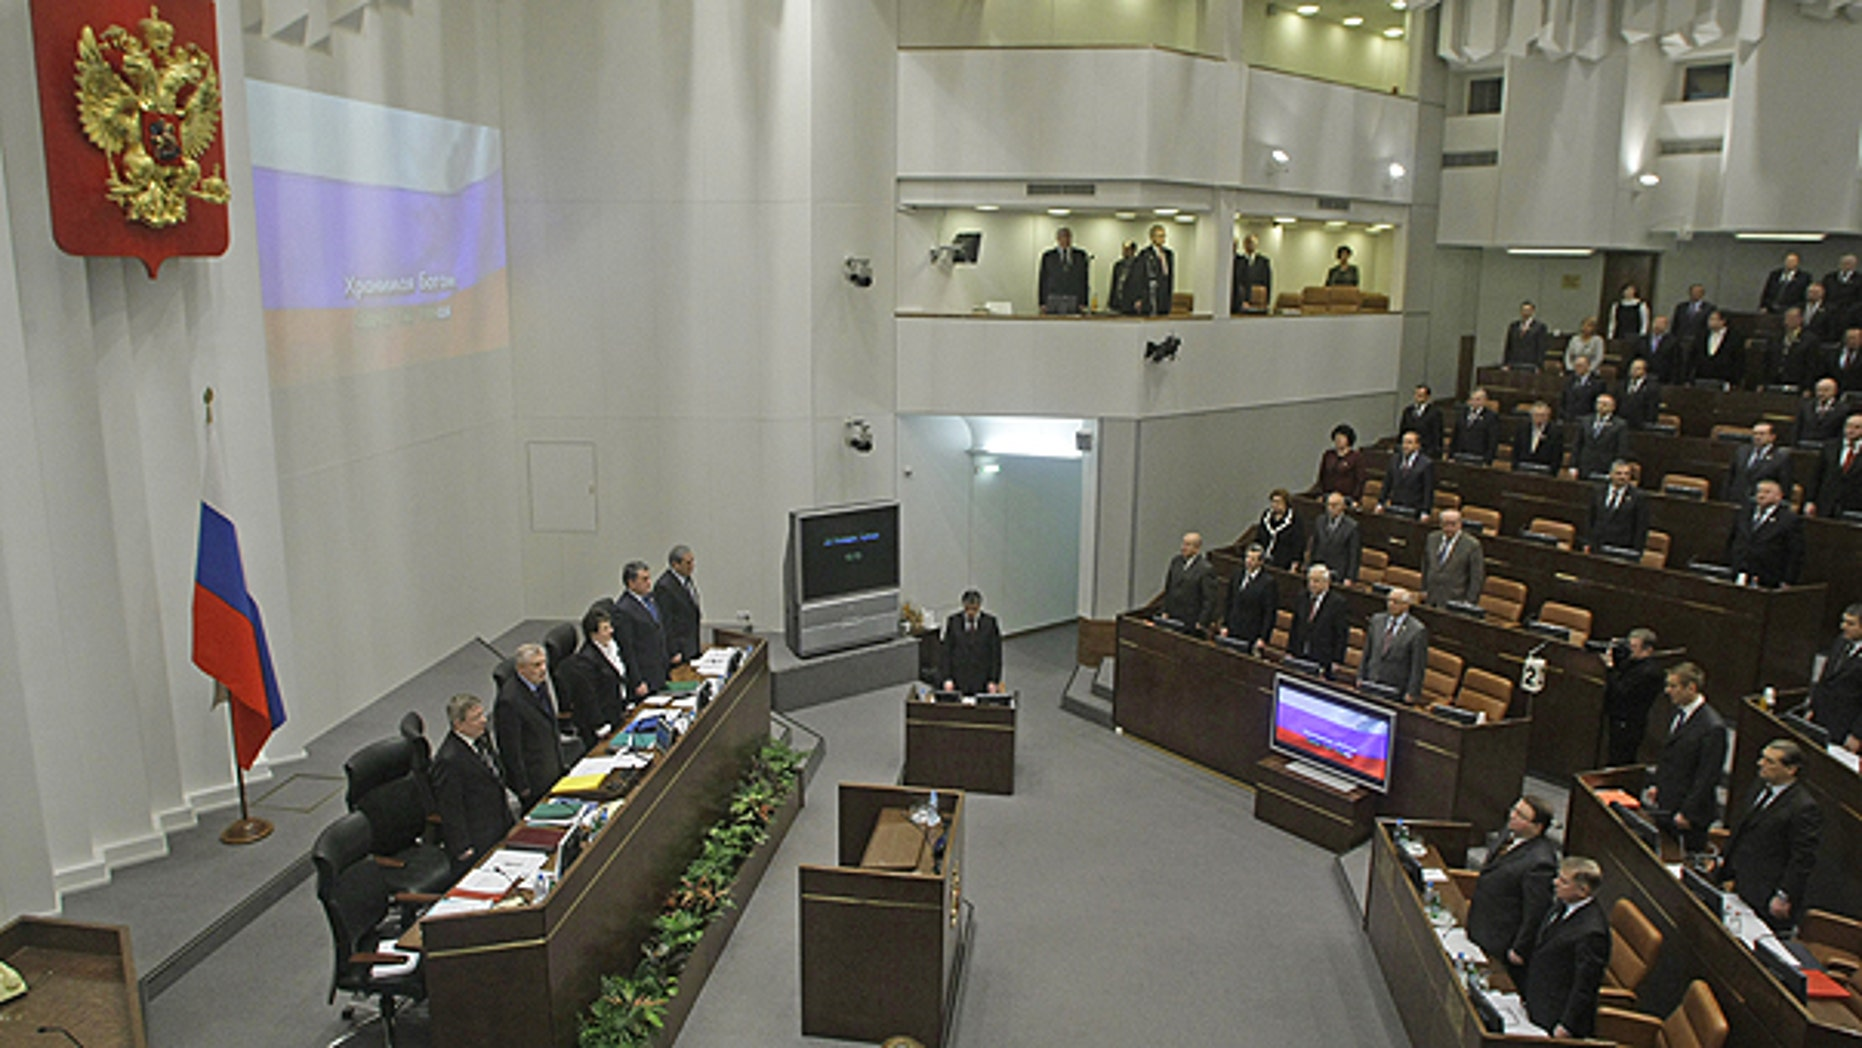 Jan. 26: Members of Russia's Federation Council, the upper house of parliament, listen to the Russian national anthem at a parliament session in Moscow, Russia.